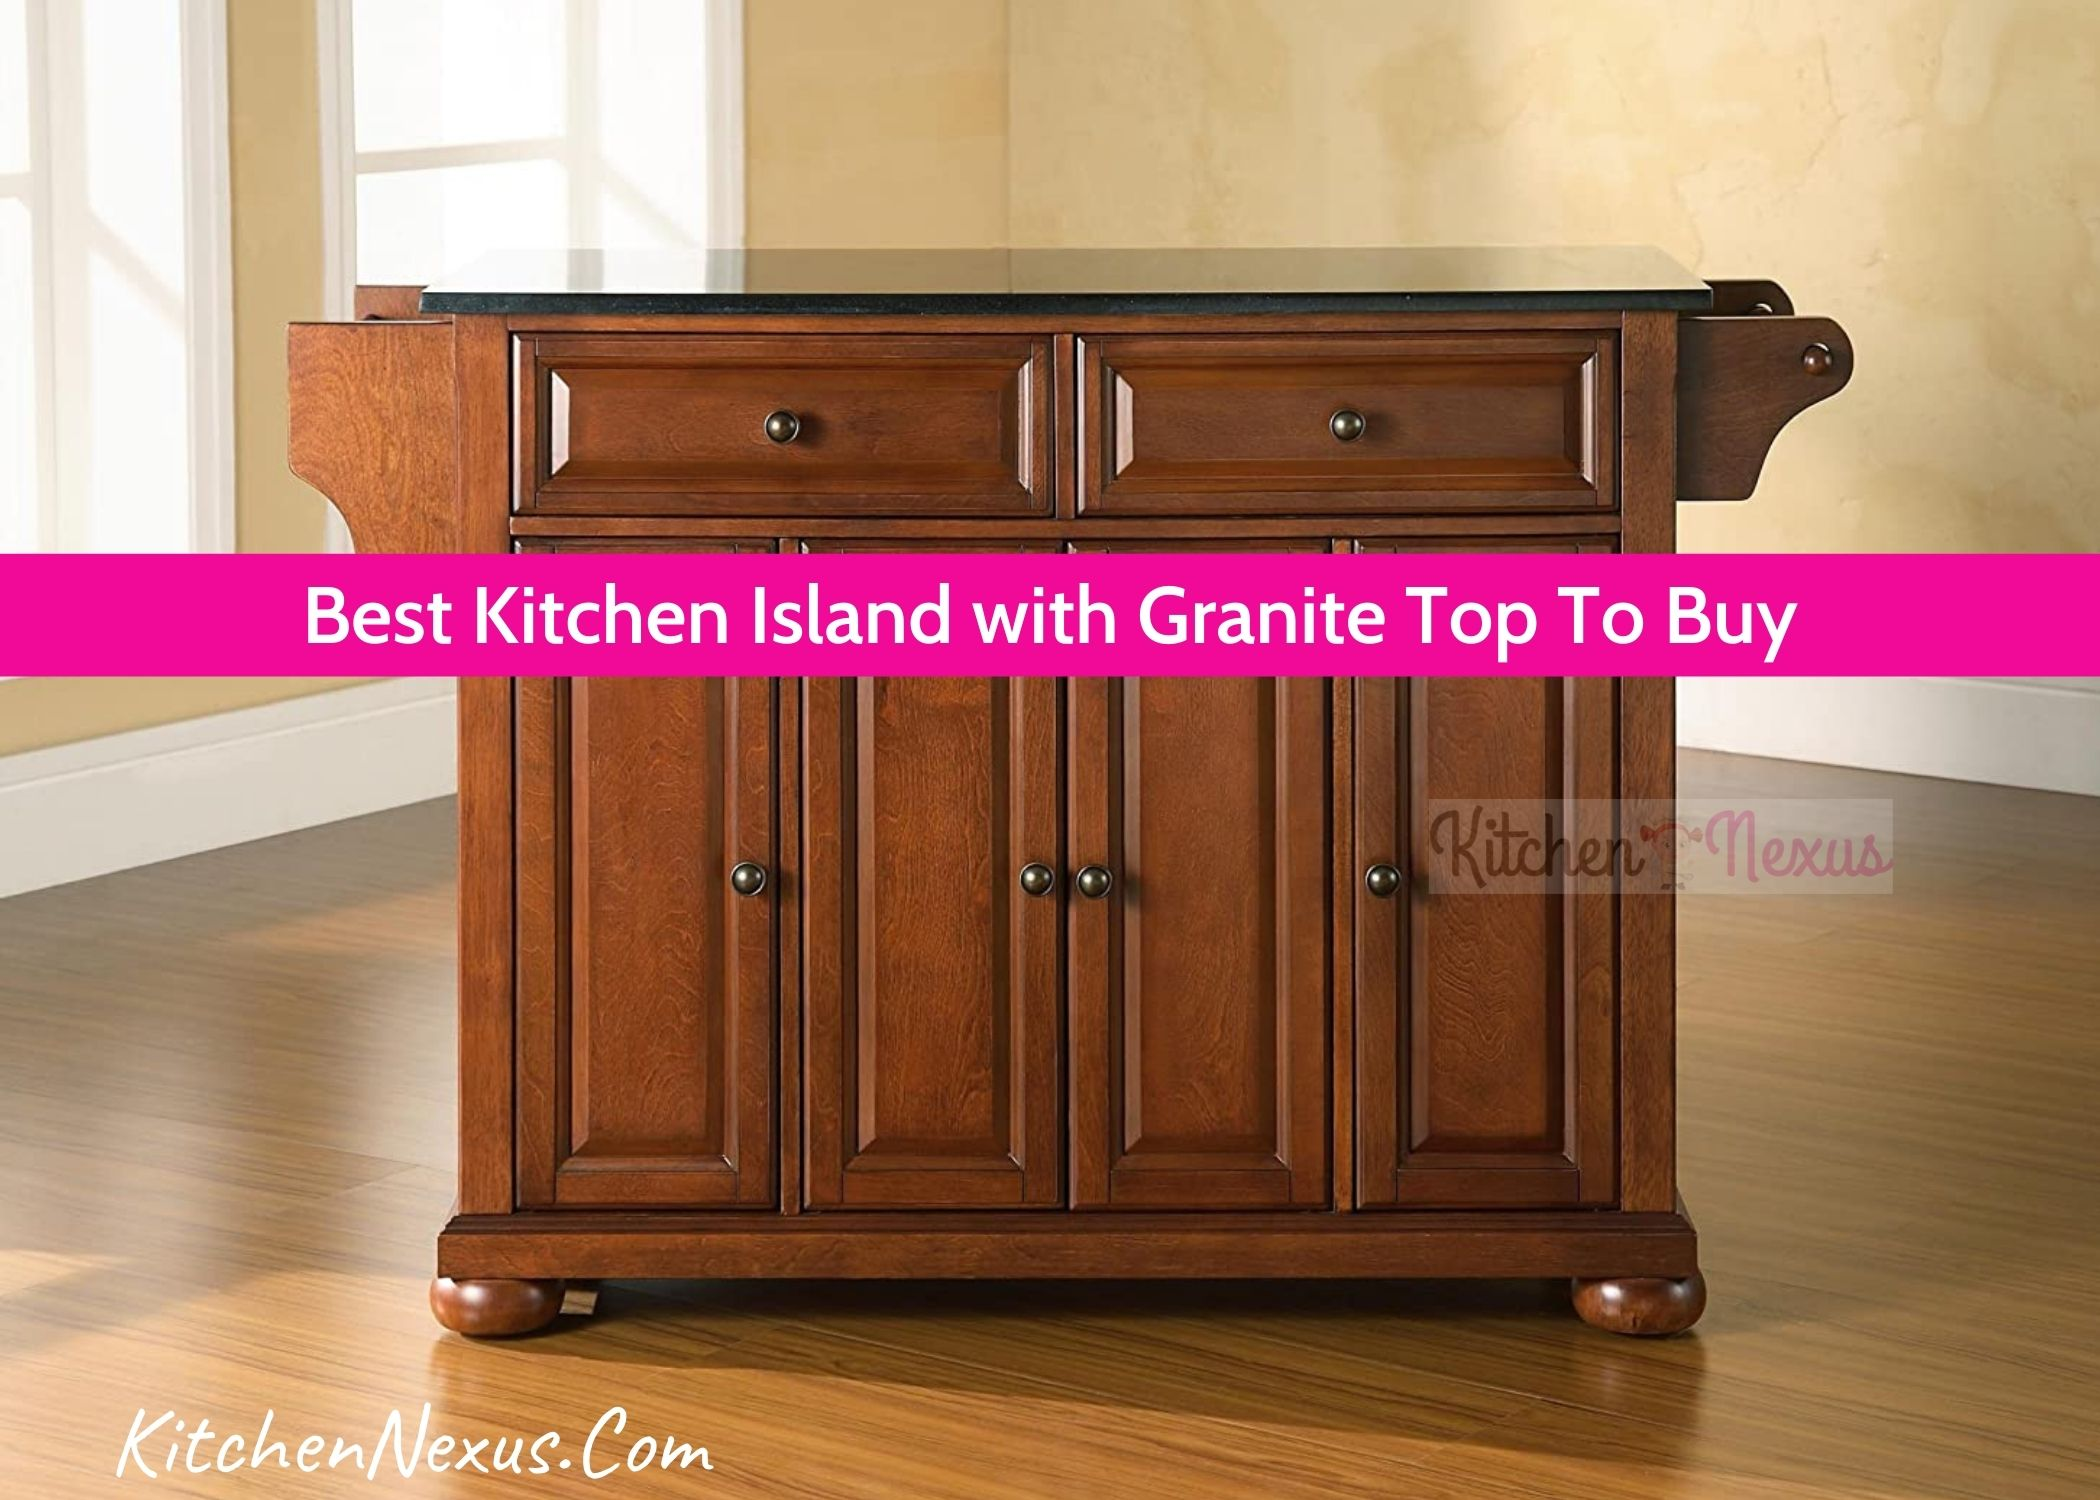 Best Kitchen Island with Granite Top Review